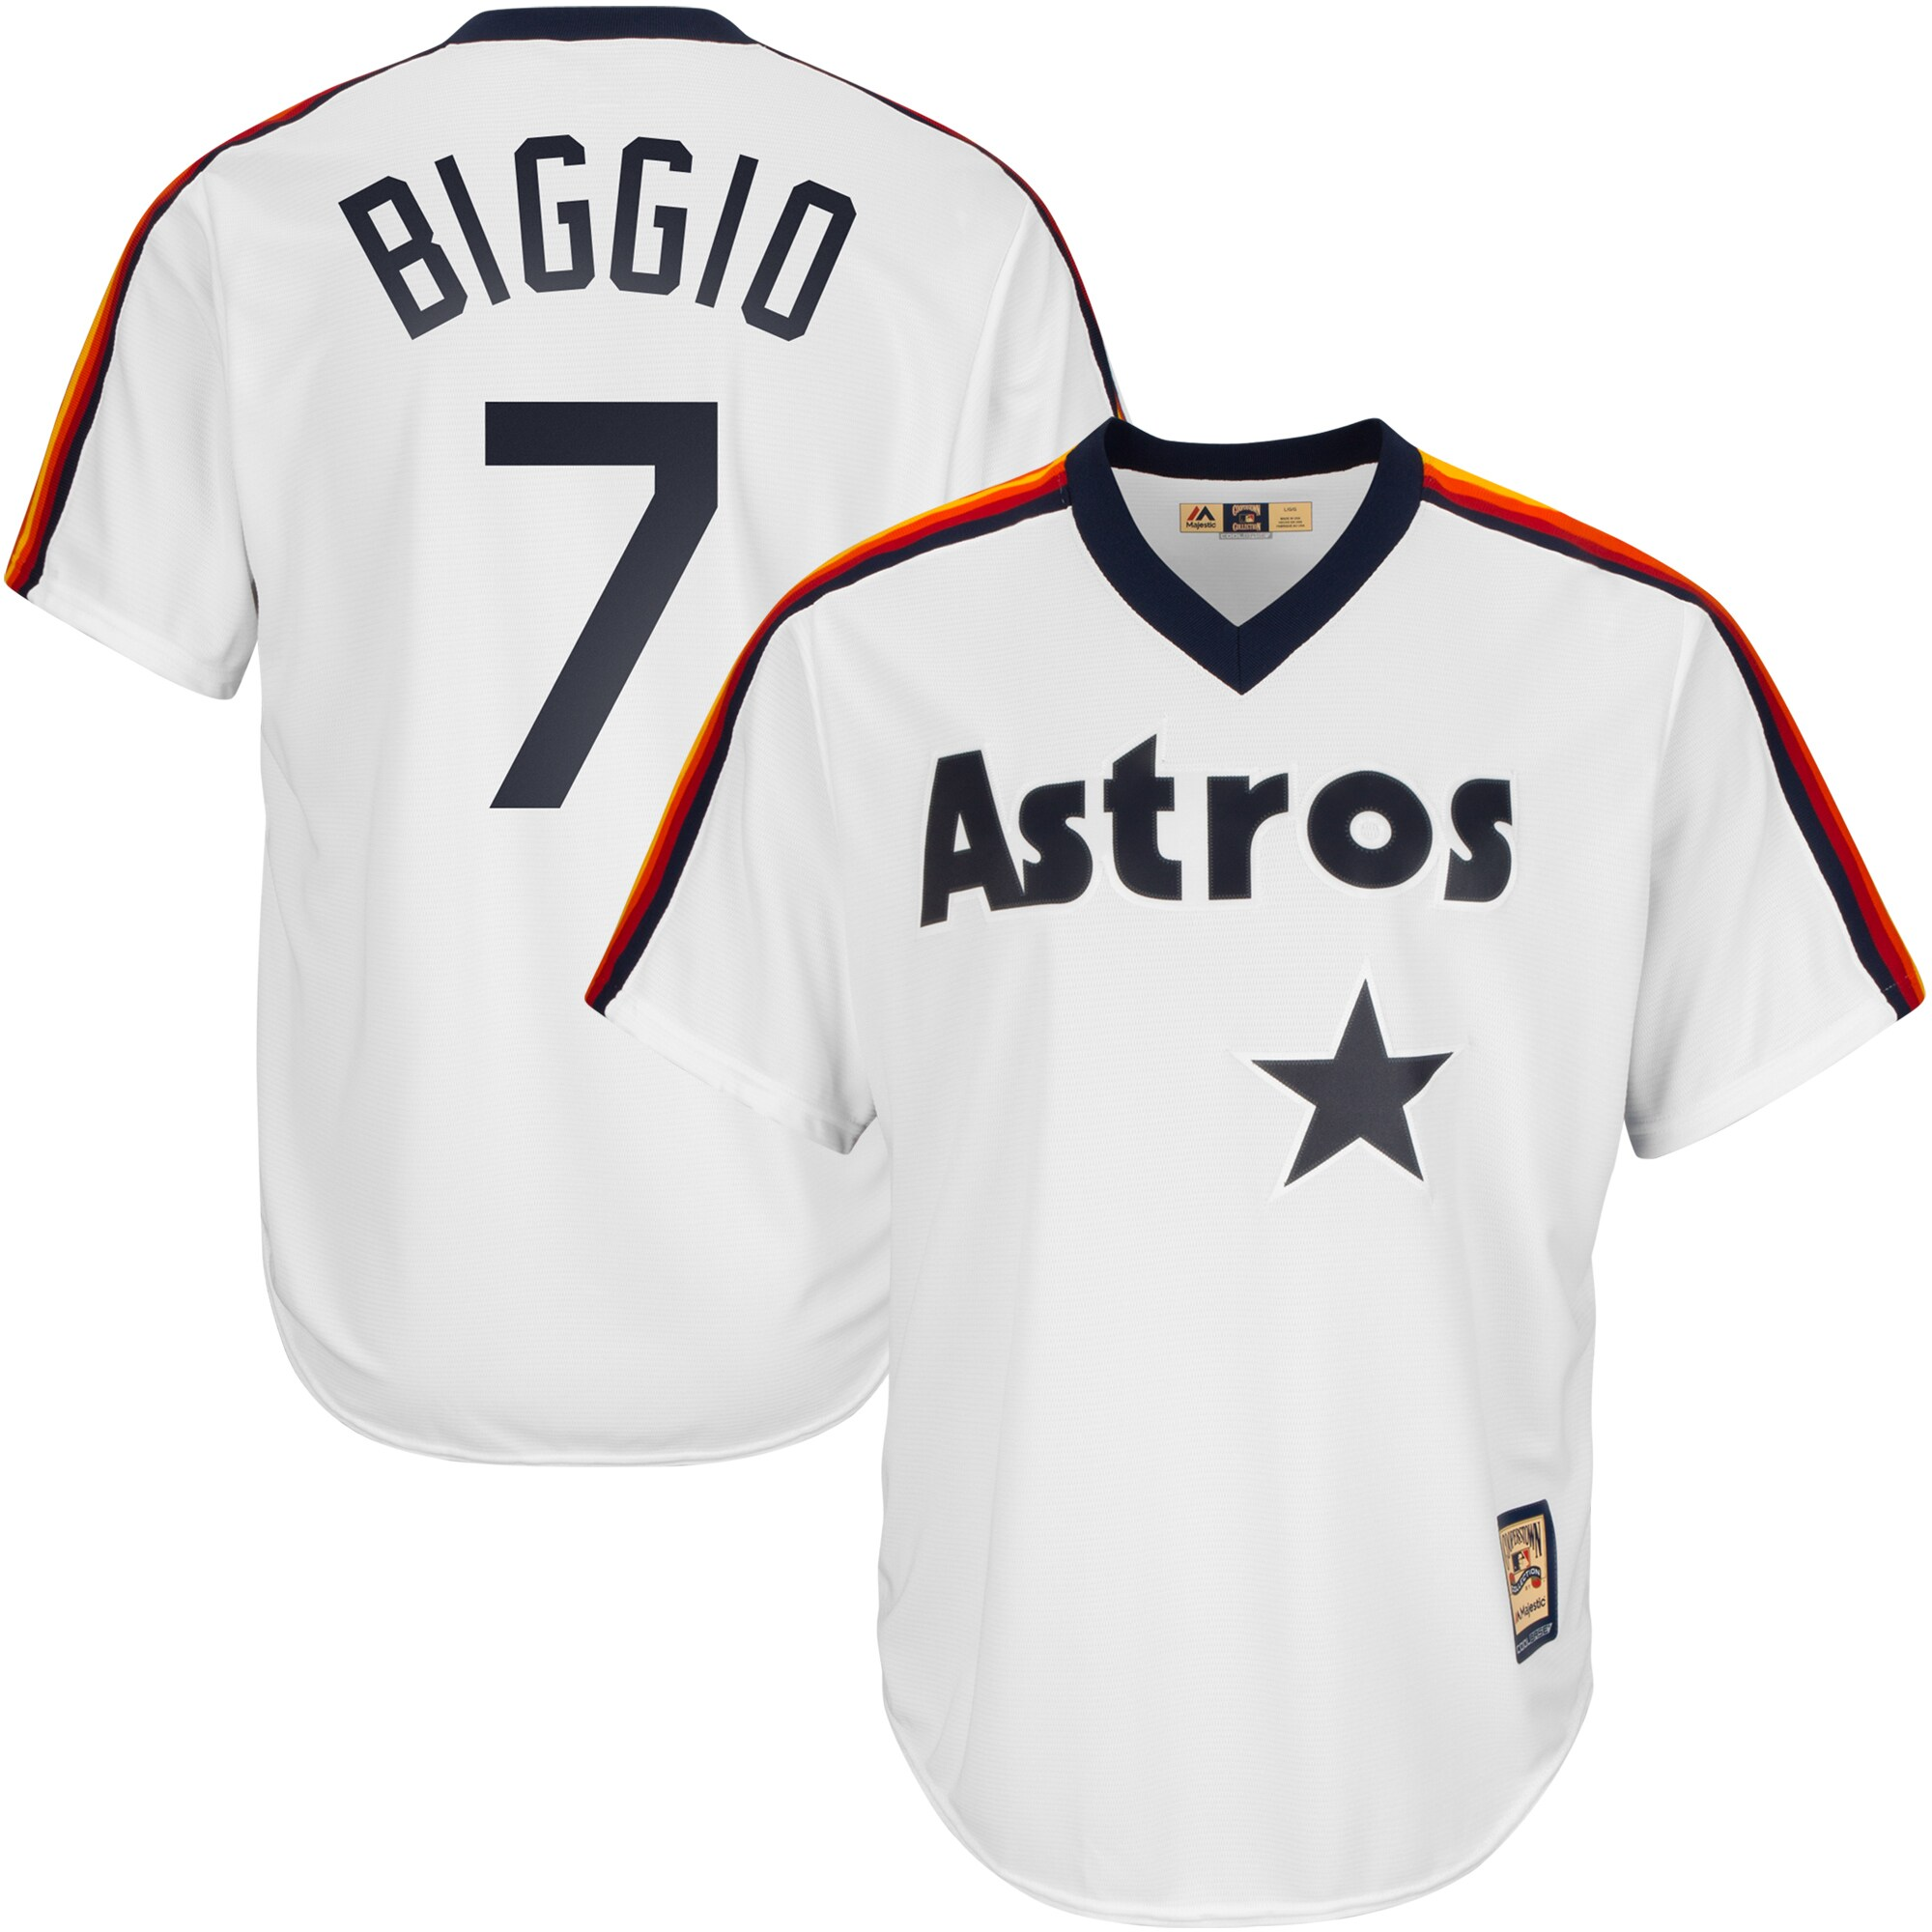 Craig Biggio Houston Astros Majestic Home Big & Tall Cooperstown Cool Base Player Jersey - White